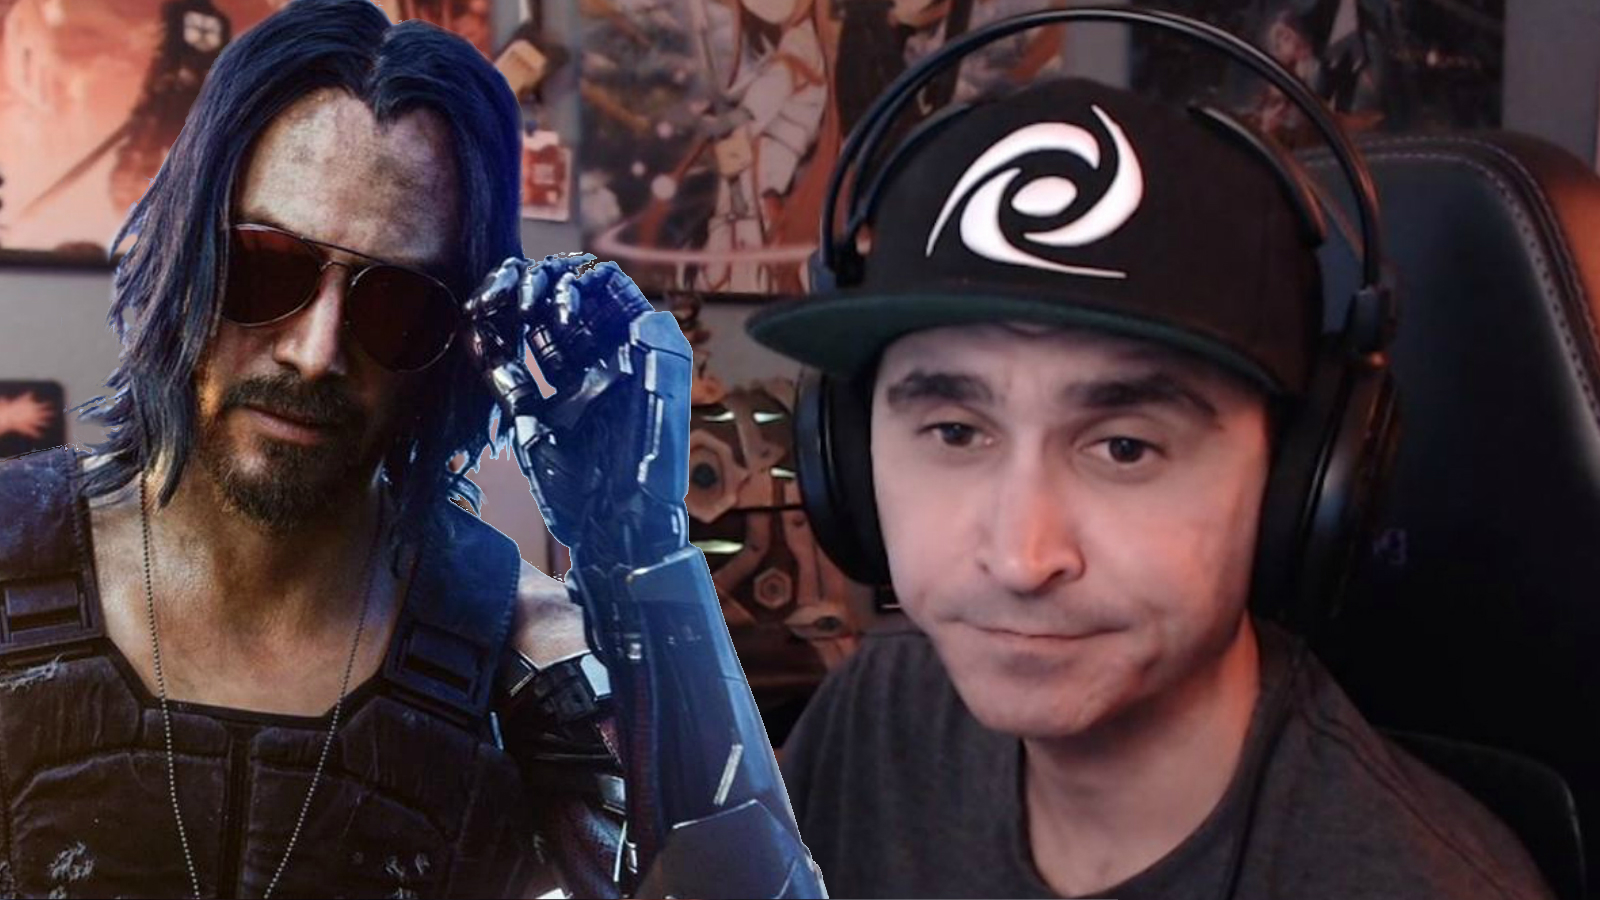 Johnny Silverhand and Summit1g